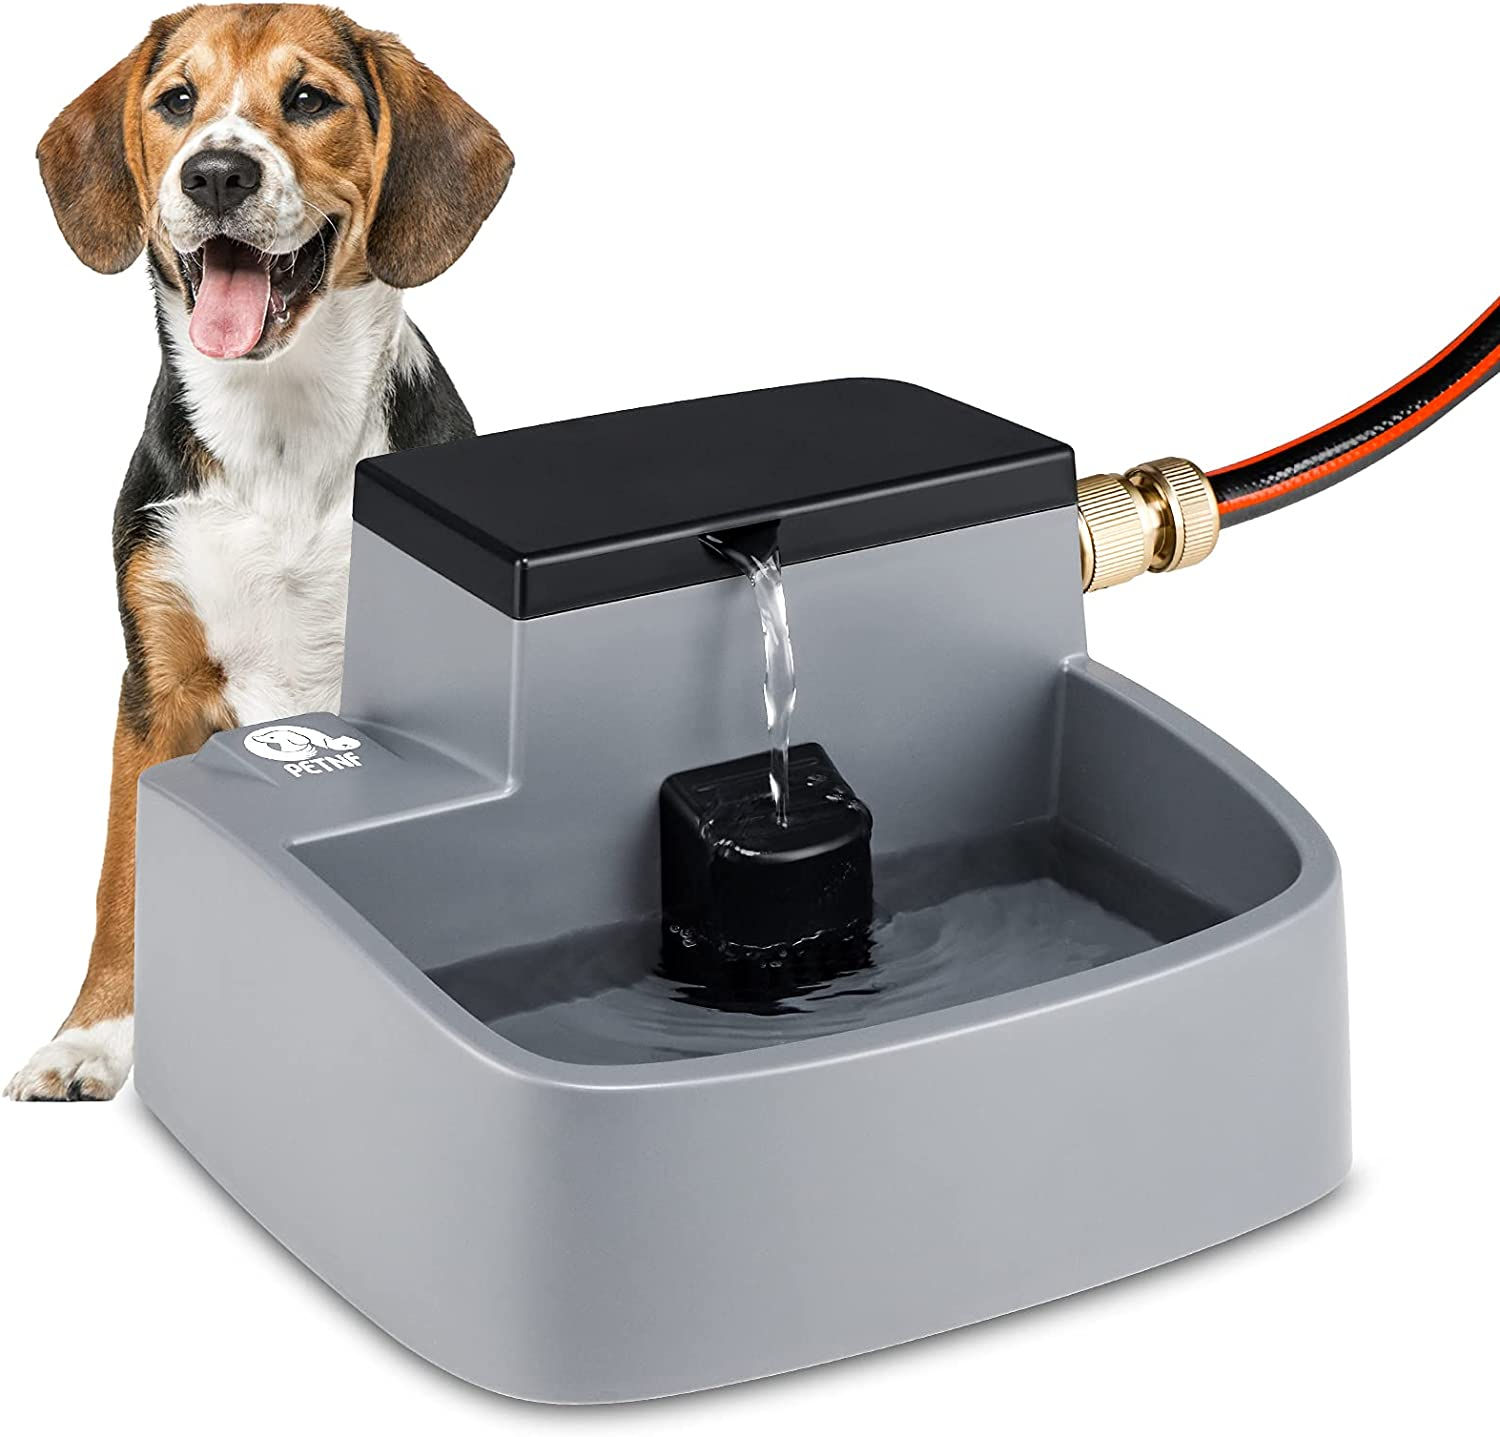 Dog Water Fountain, 2021 Newest Auto Refill Pet Water Fountain 2 in 1 Automatic Dog waterer Water Bowl Dispenser Outdoor Indoor, 52OZ Pet Drinking Fountains for Dogs Cats Rabbits Multiple Pets Animals